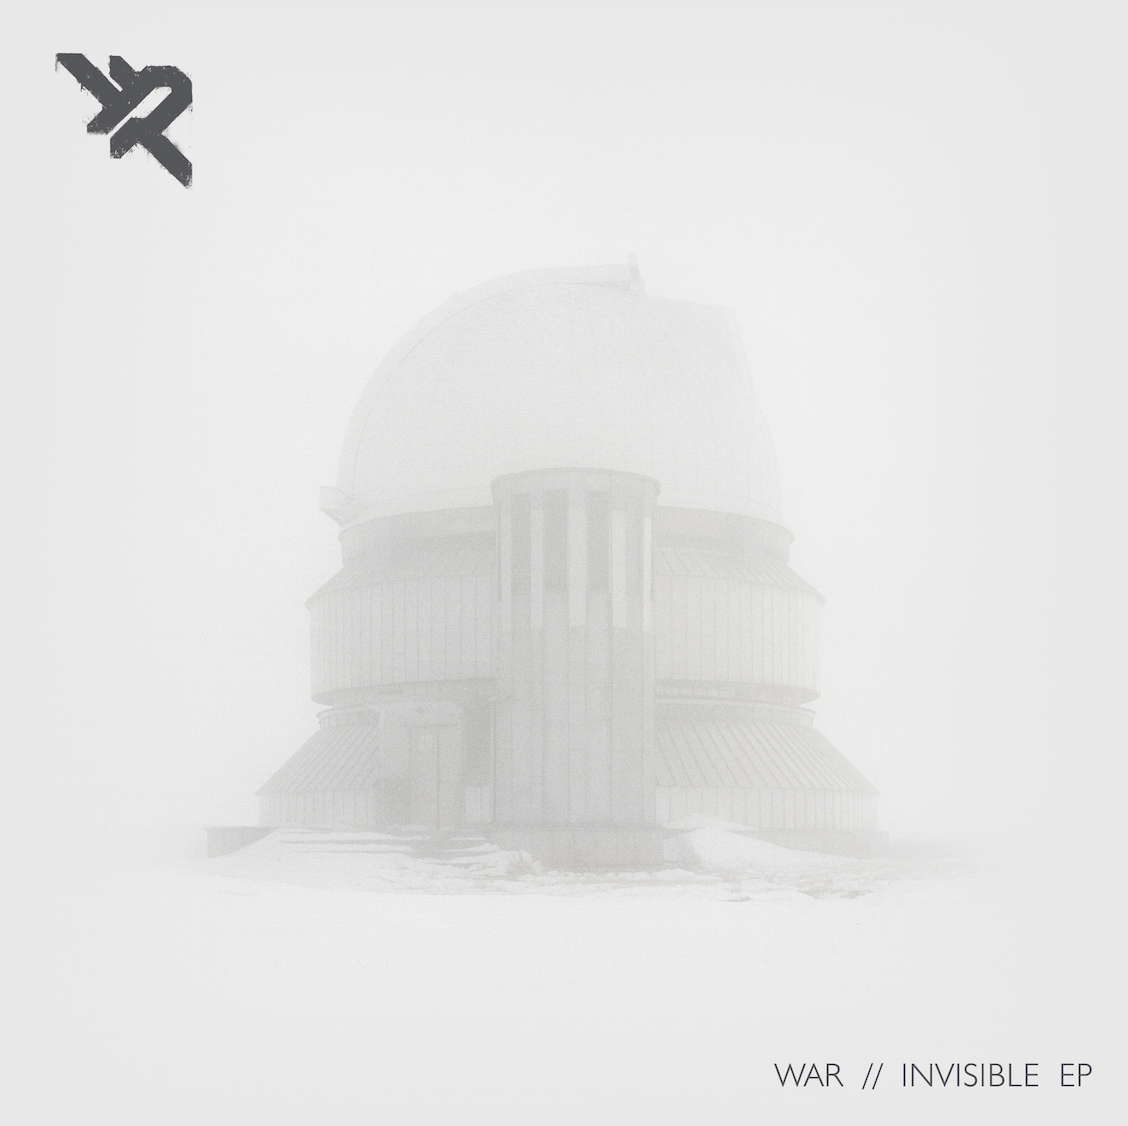 bnkr002_-_invisible_artwork_small.png